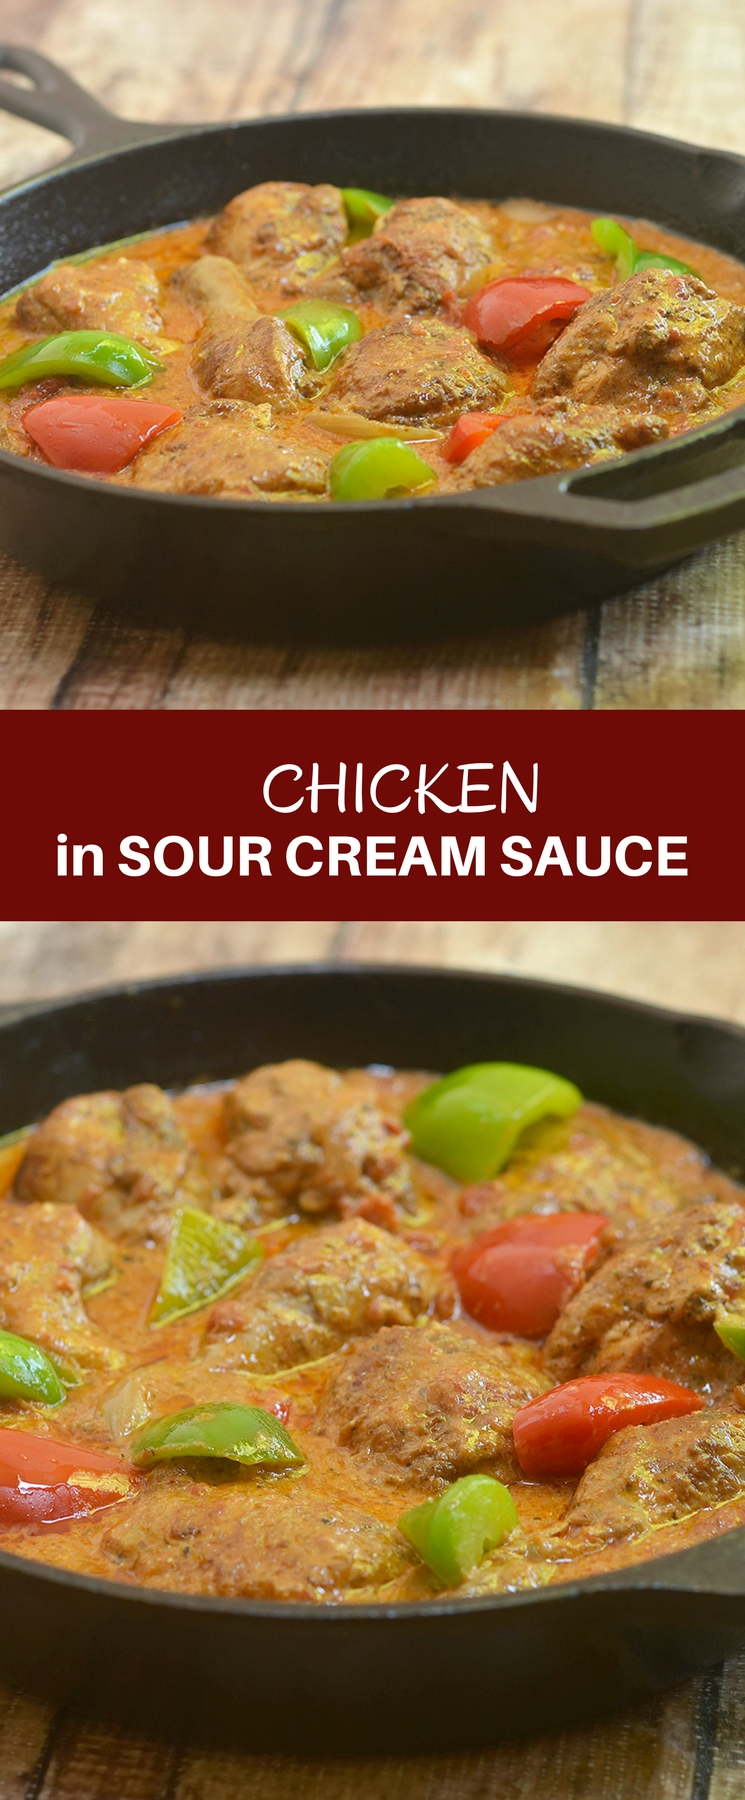 Chicken in Sour Cream Sauce made with a rich, creamy tomato-sour cream sauce is sure to be a family favorite. Quick and easy to make yet packs full flavor, it's perfect for busy weeknights!